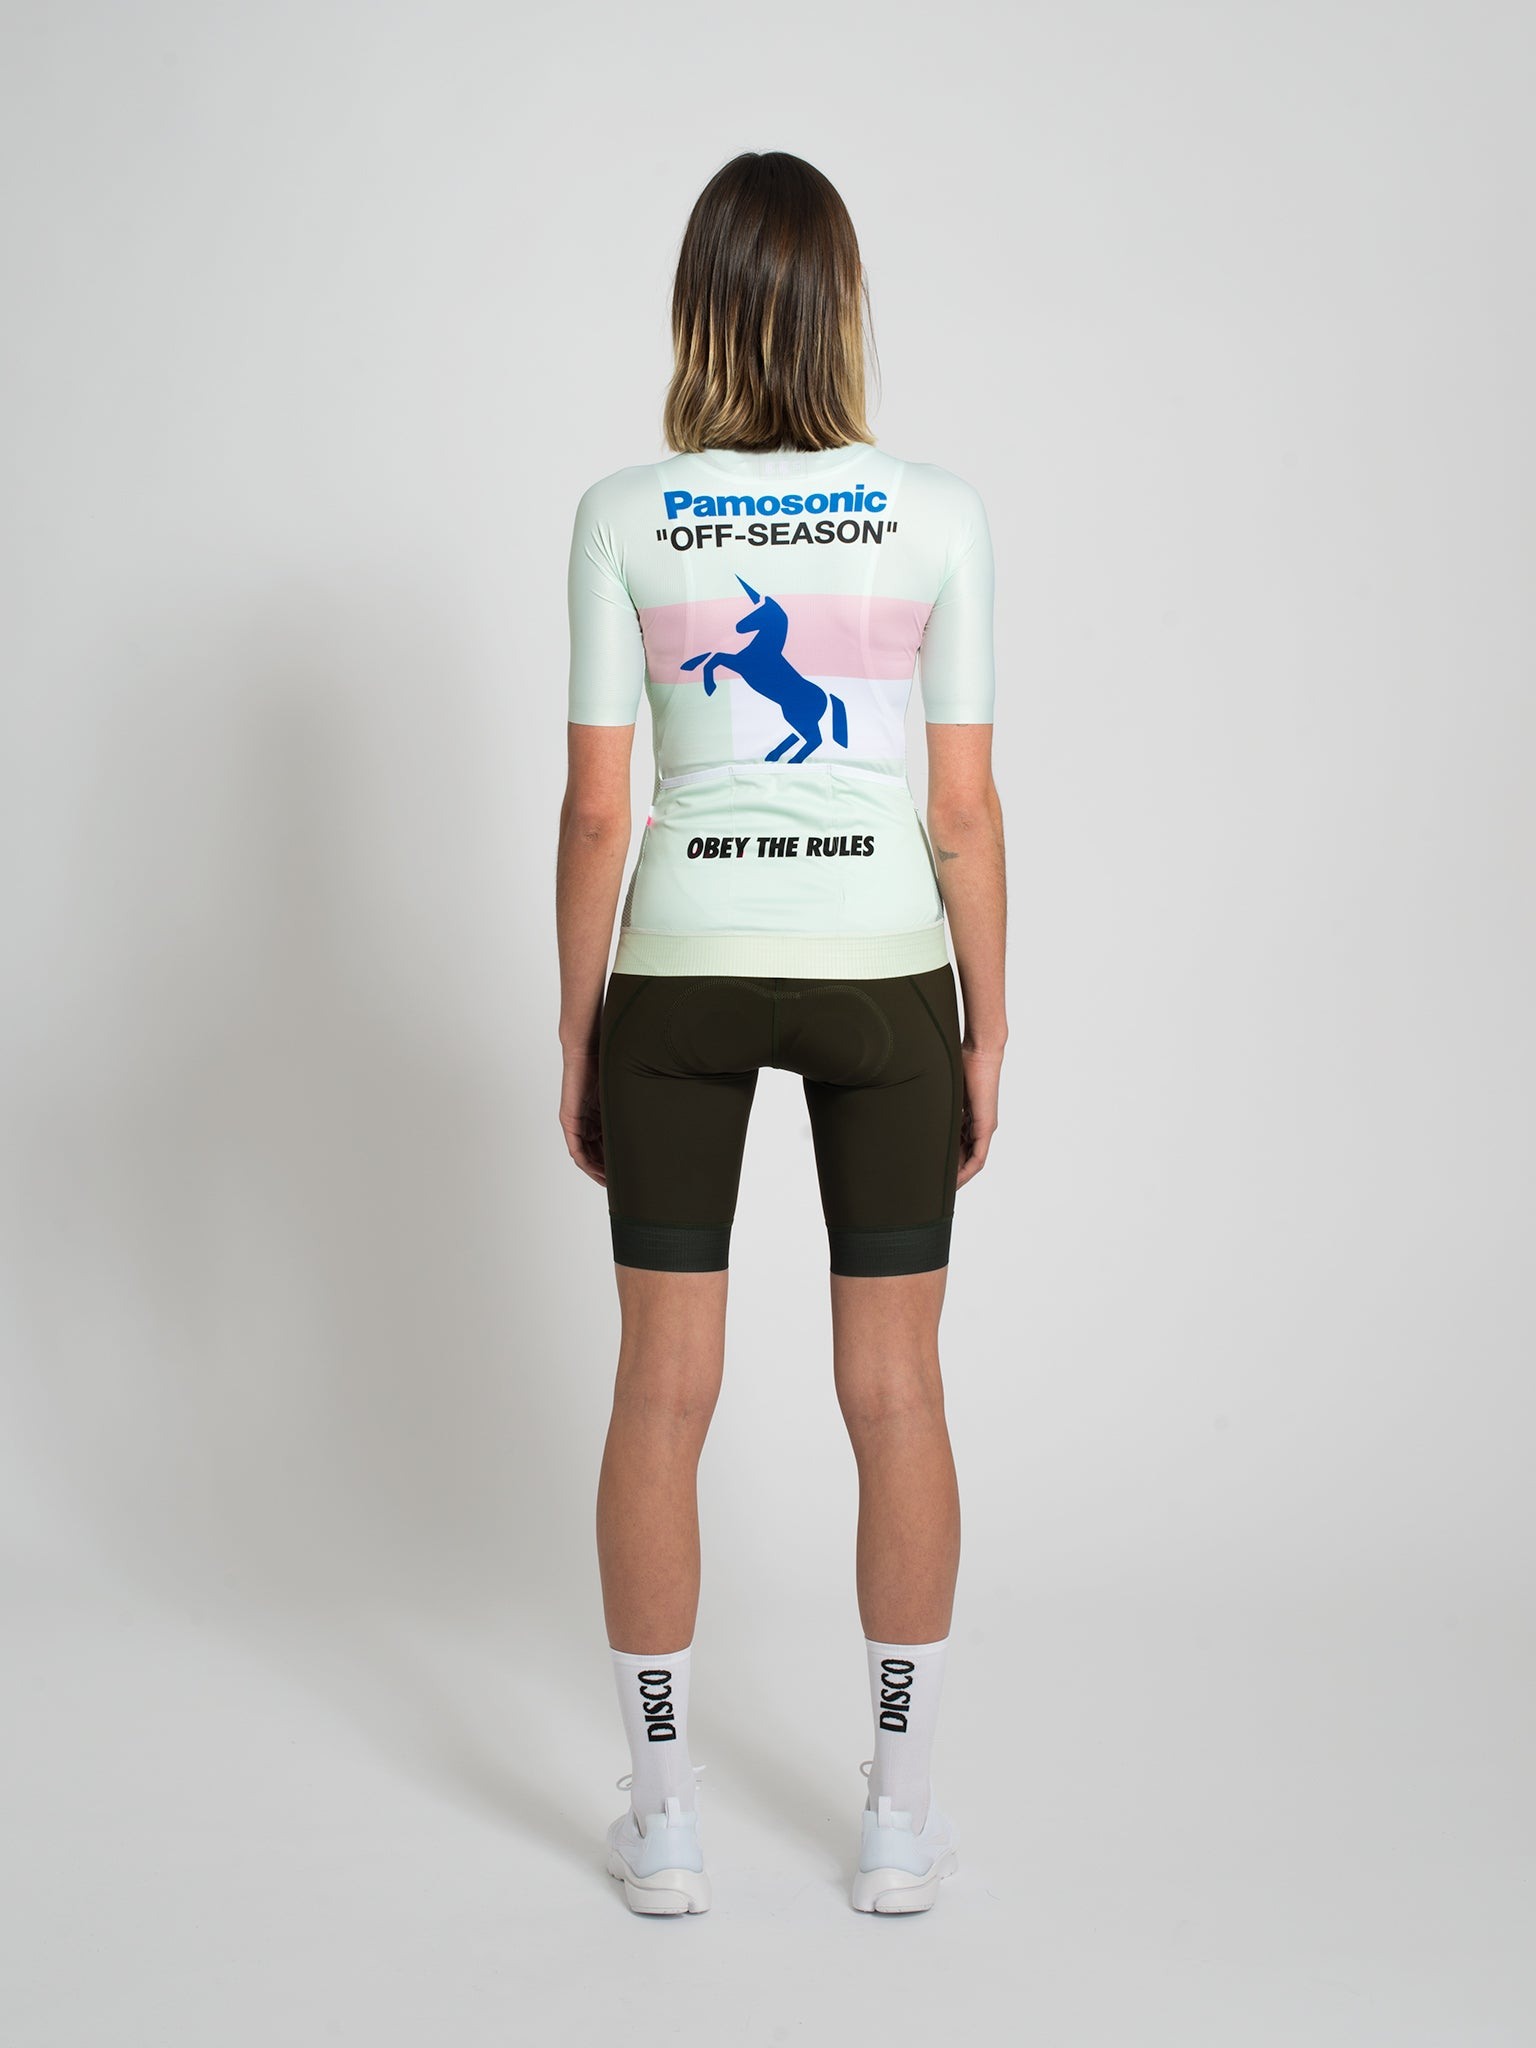 Pamosonic Jersey Women